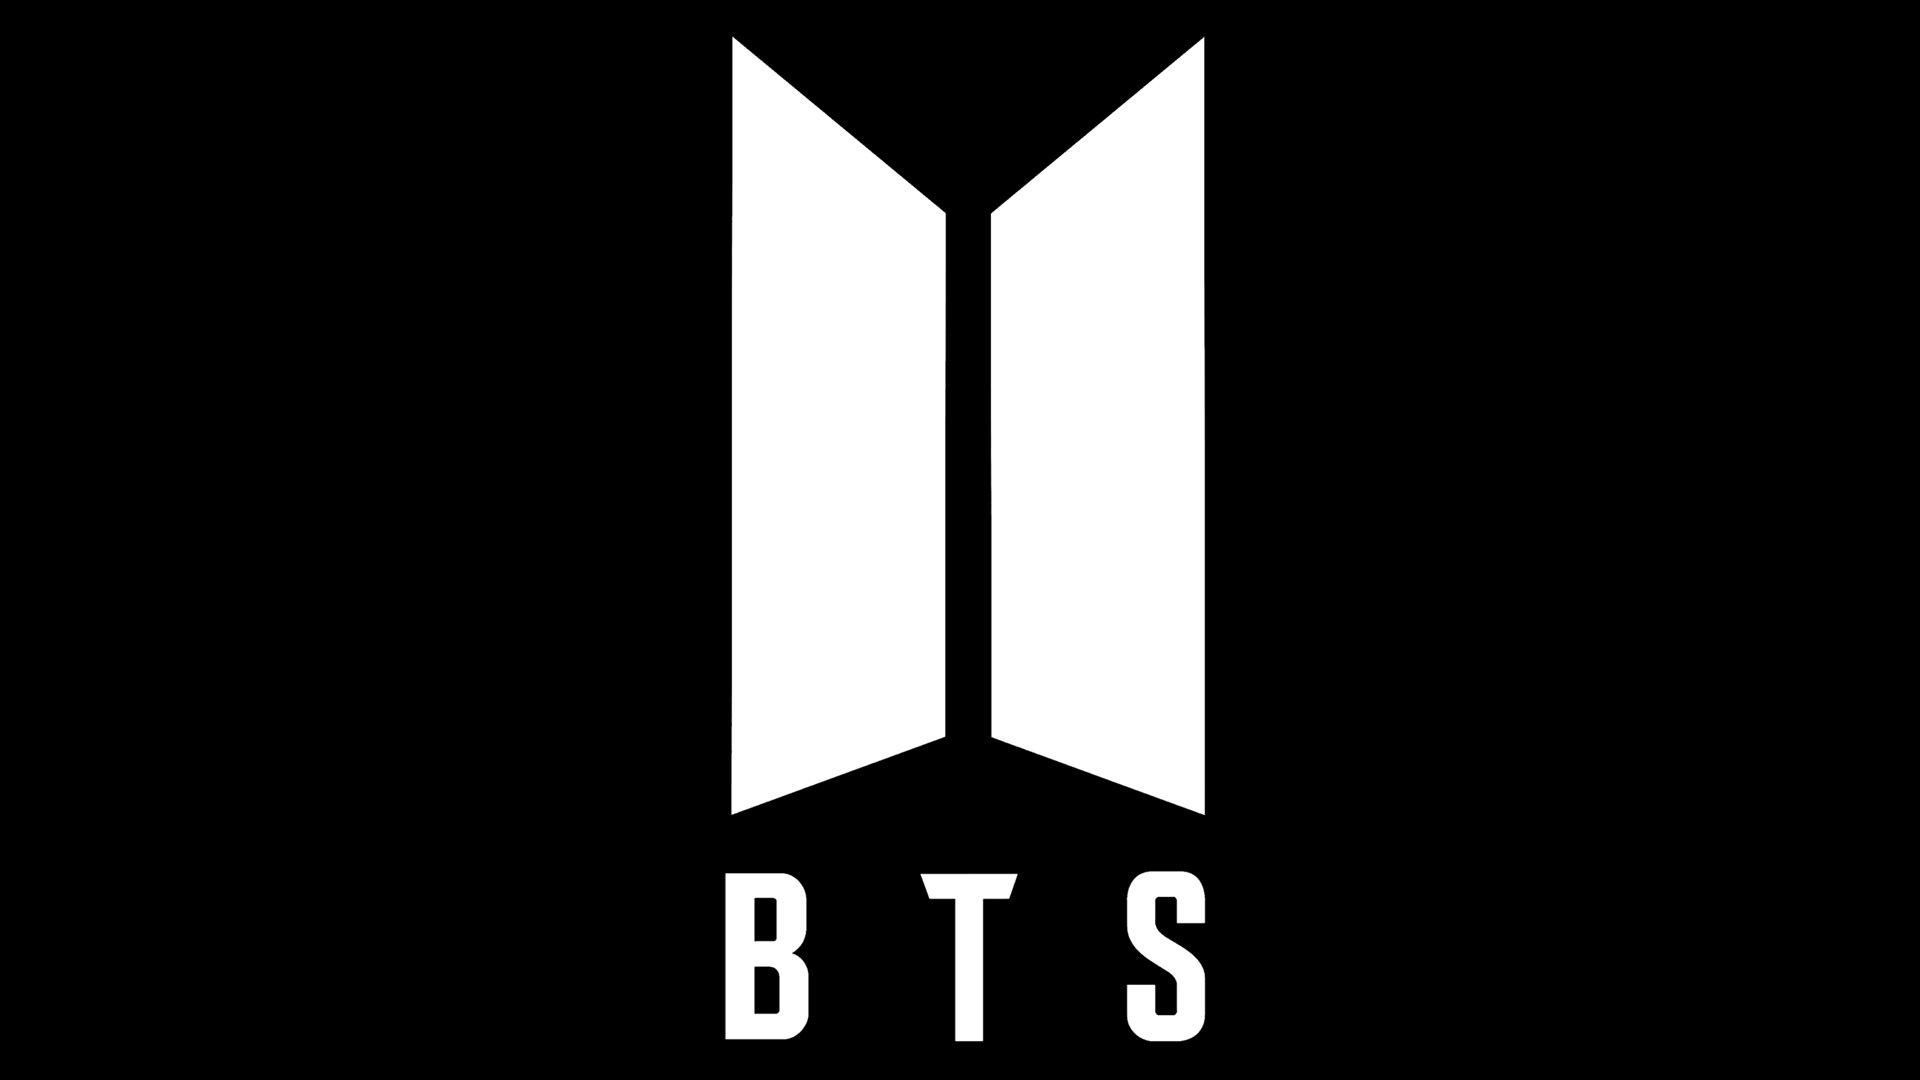 bts logo and symbol meaning history png bts logo and symbol meaning history png